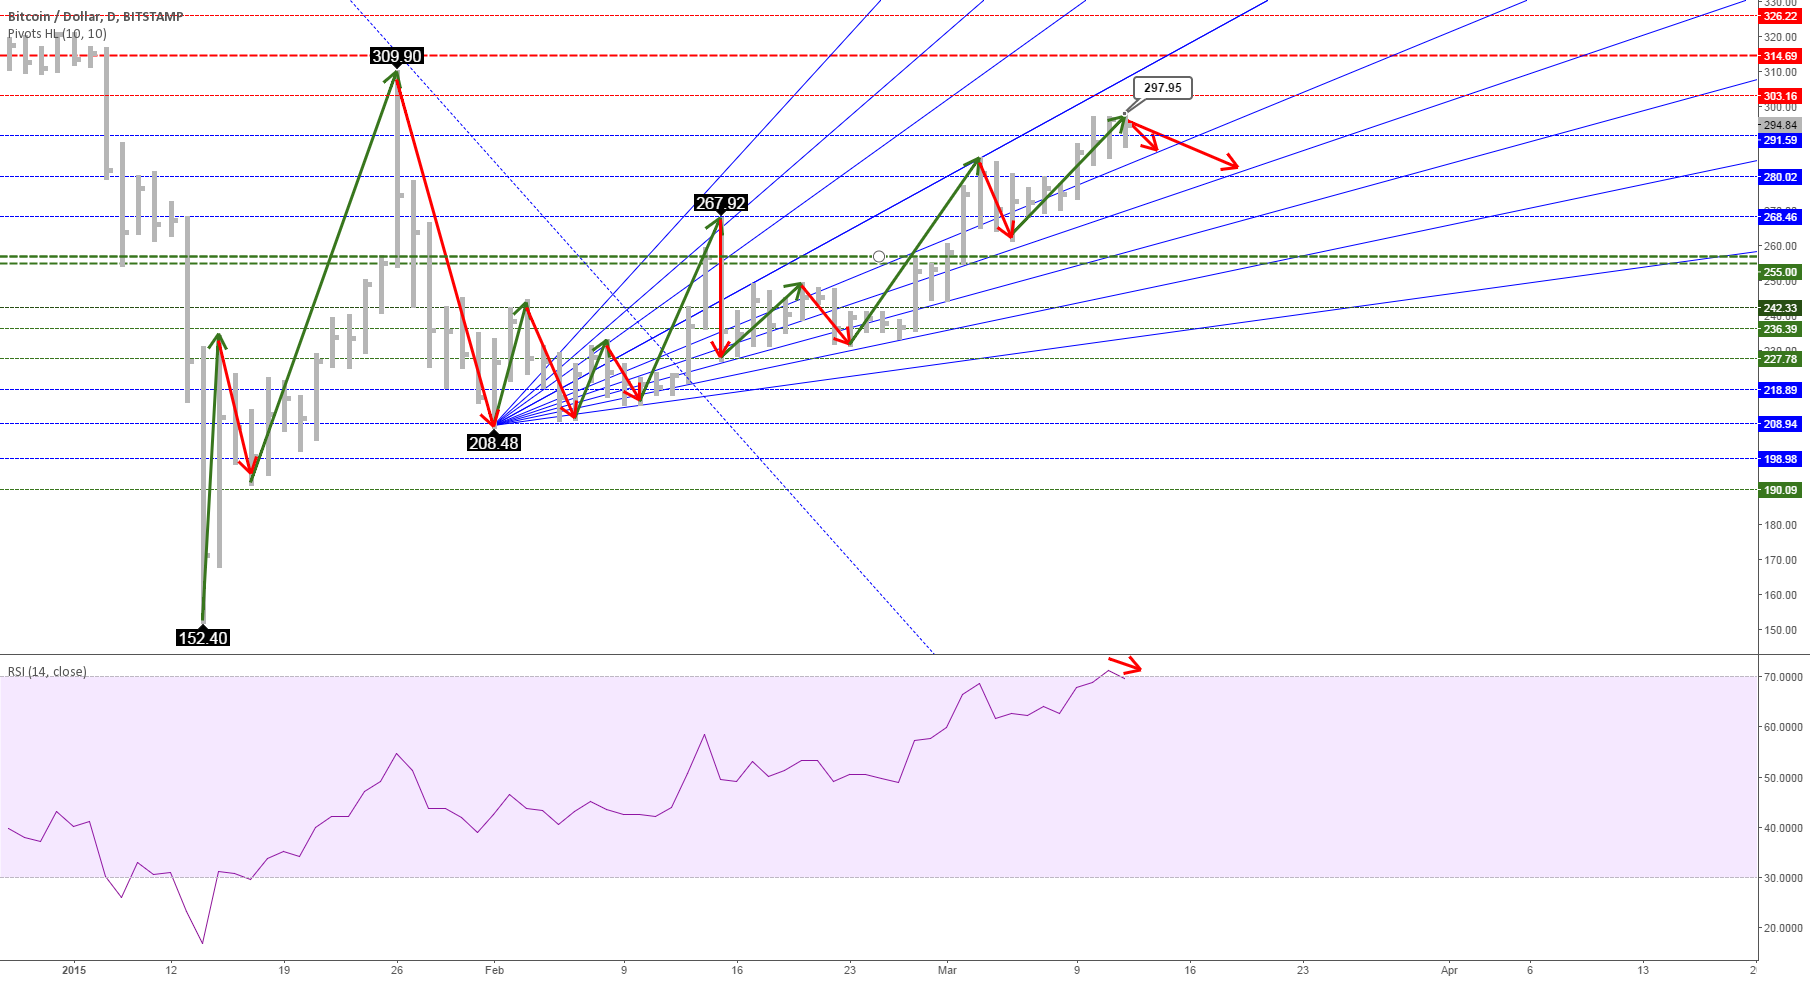 Bitcoin Price Looks Overbought Today